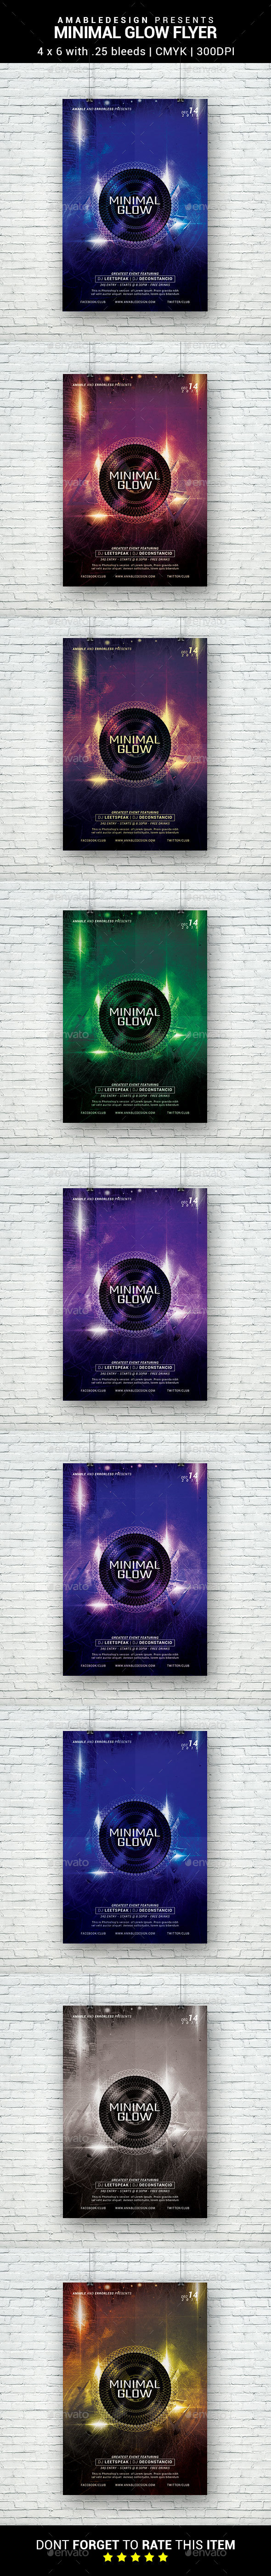 Minimal Glow Flyer - Clubs & Parties Events